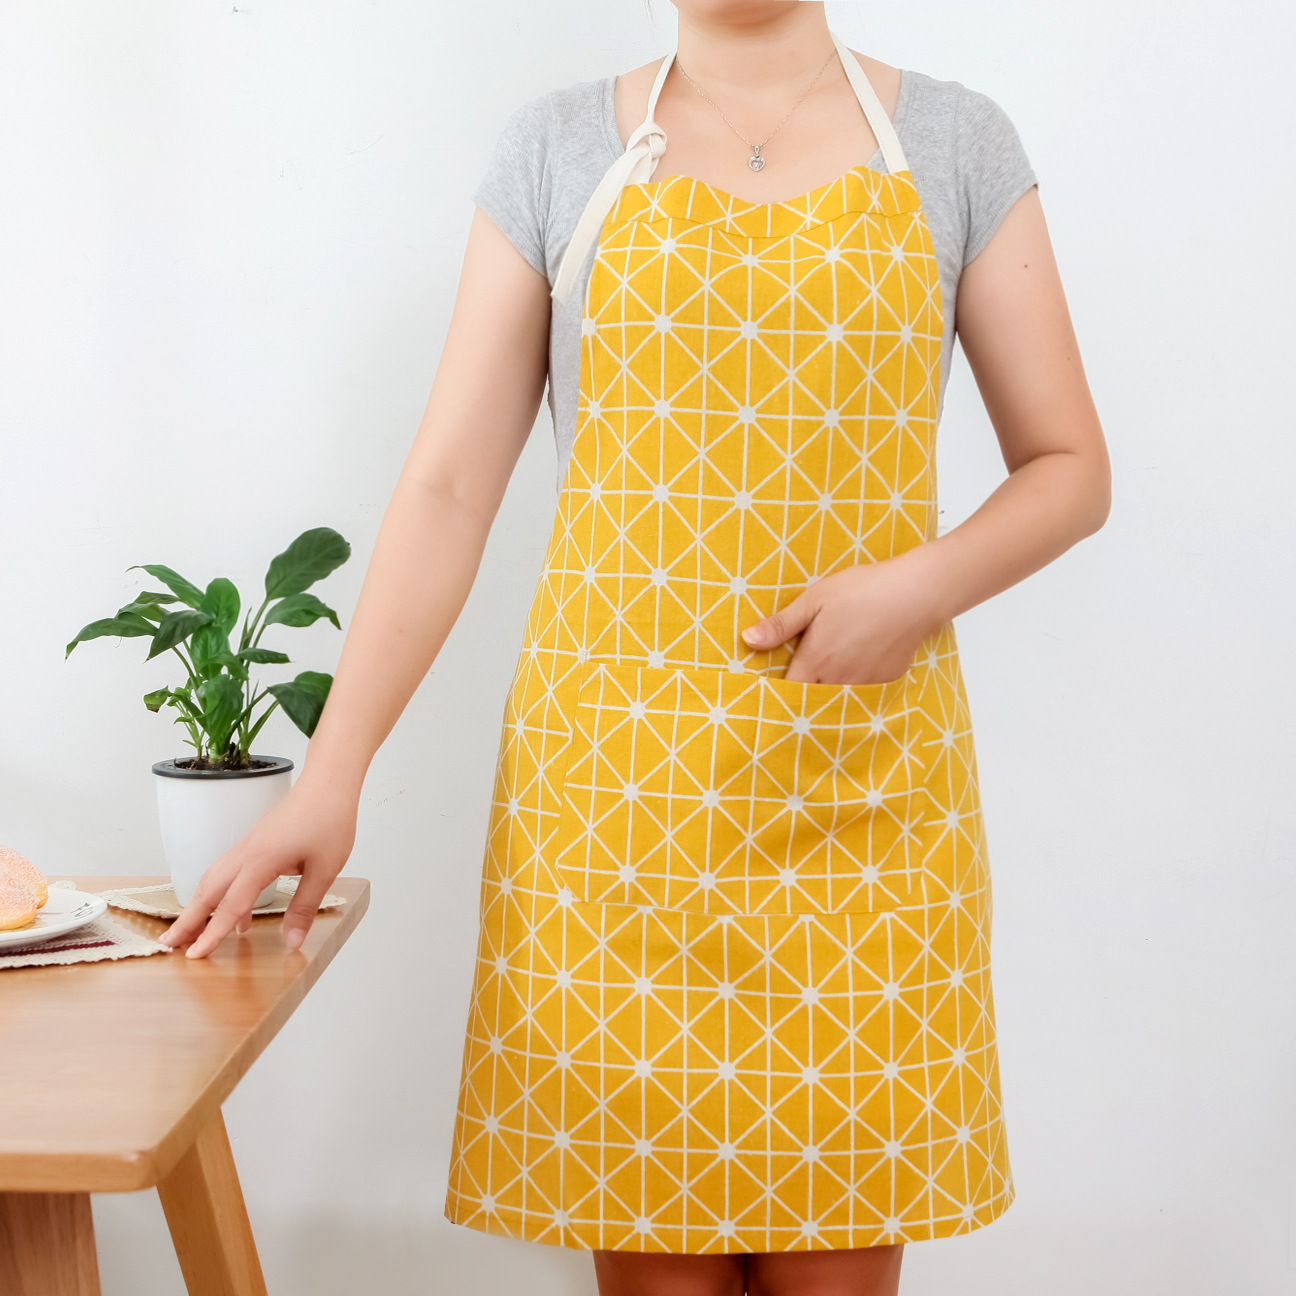 Northern European-Style Cotton Linen Apron Kitchen Home Cleaning Protective Clothing Men And Women Cooking Pure Cotton Apron Bak